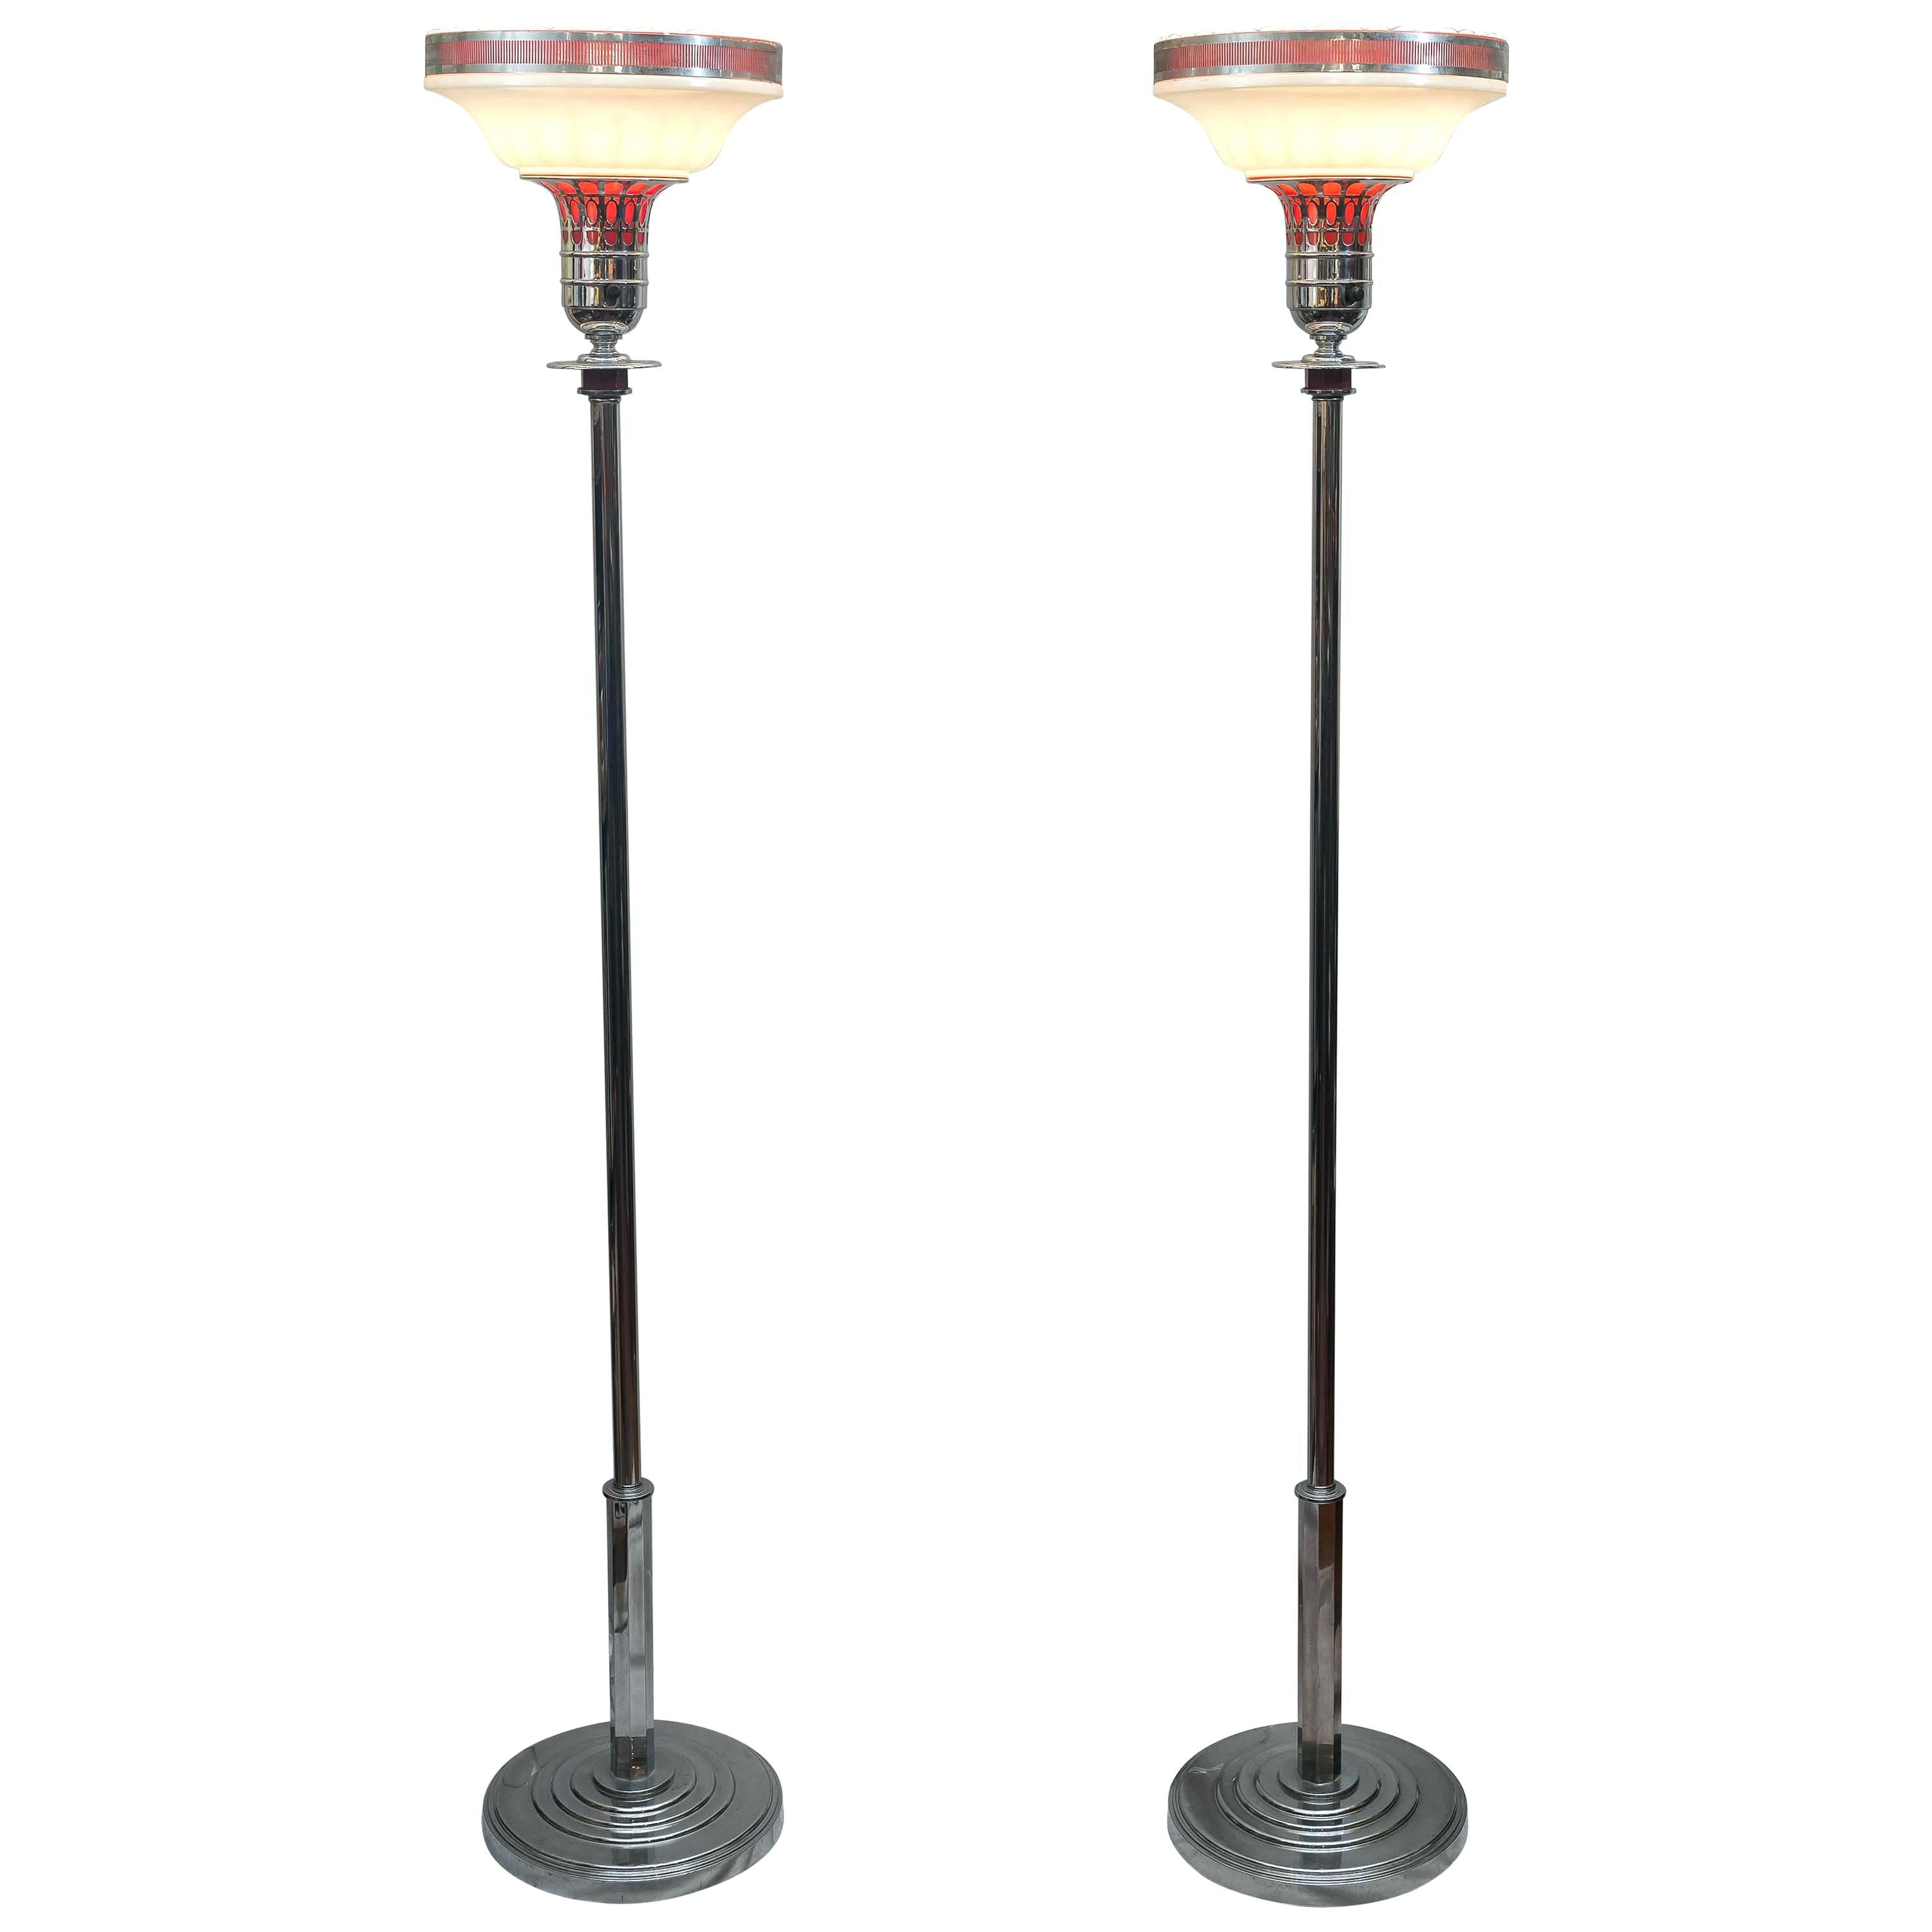 Led Torchiere Floor Lamp With Reading Light Lamp Torchiere